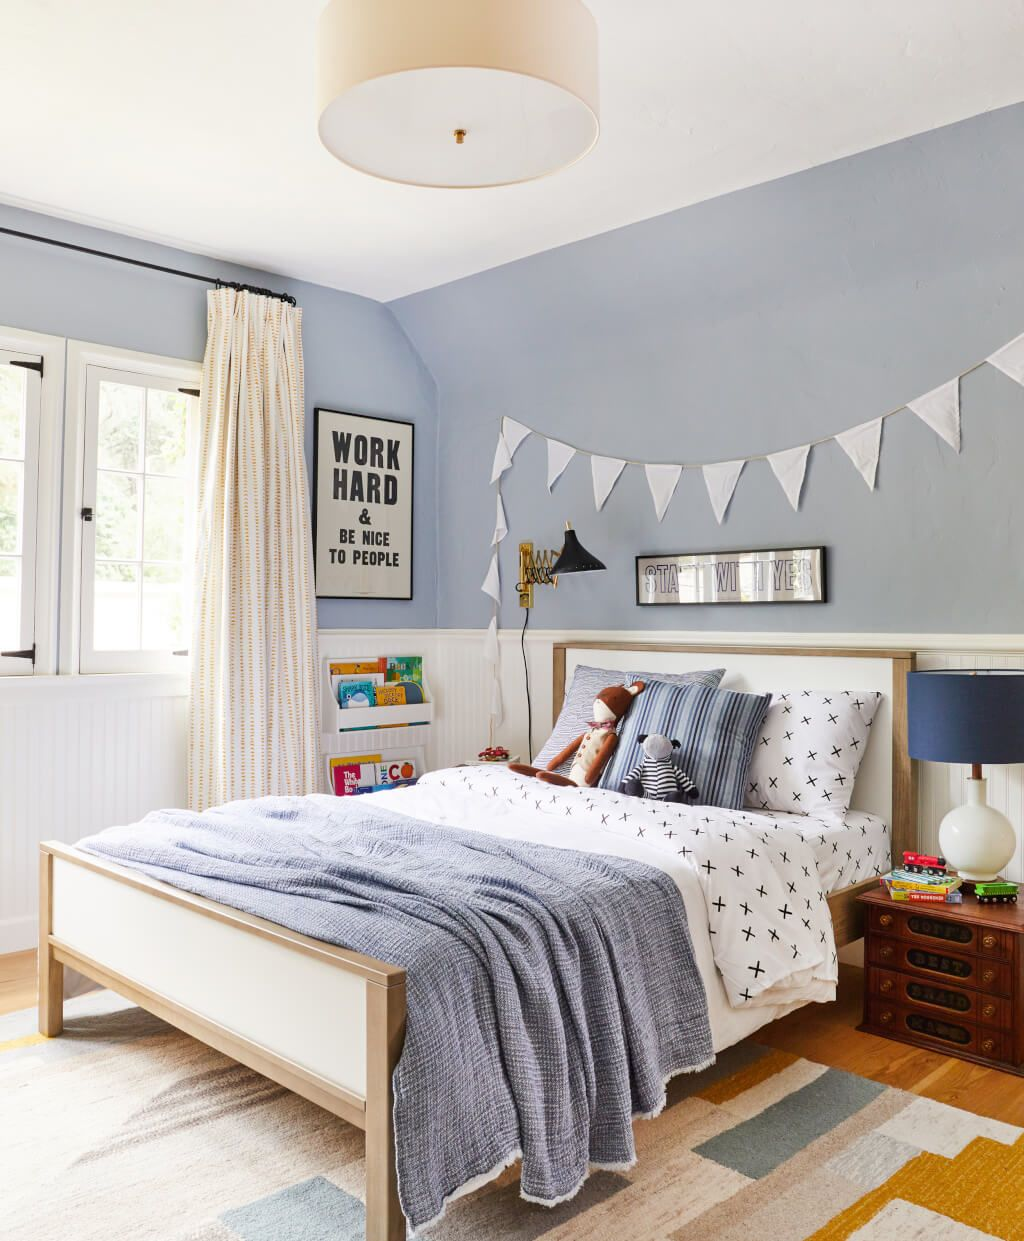 Boys Bedroom Decor: Charlie's Big Boy Room Reveal + Shop The Look